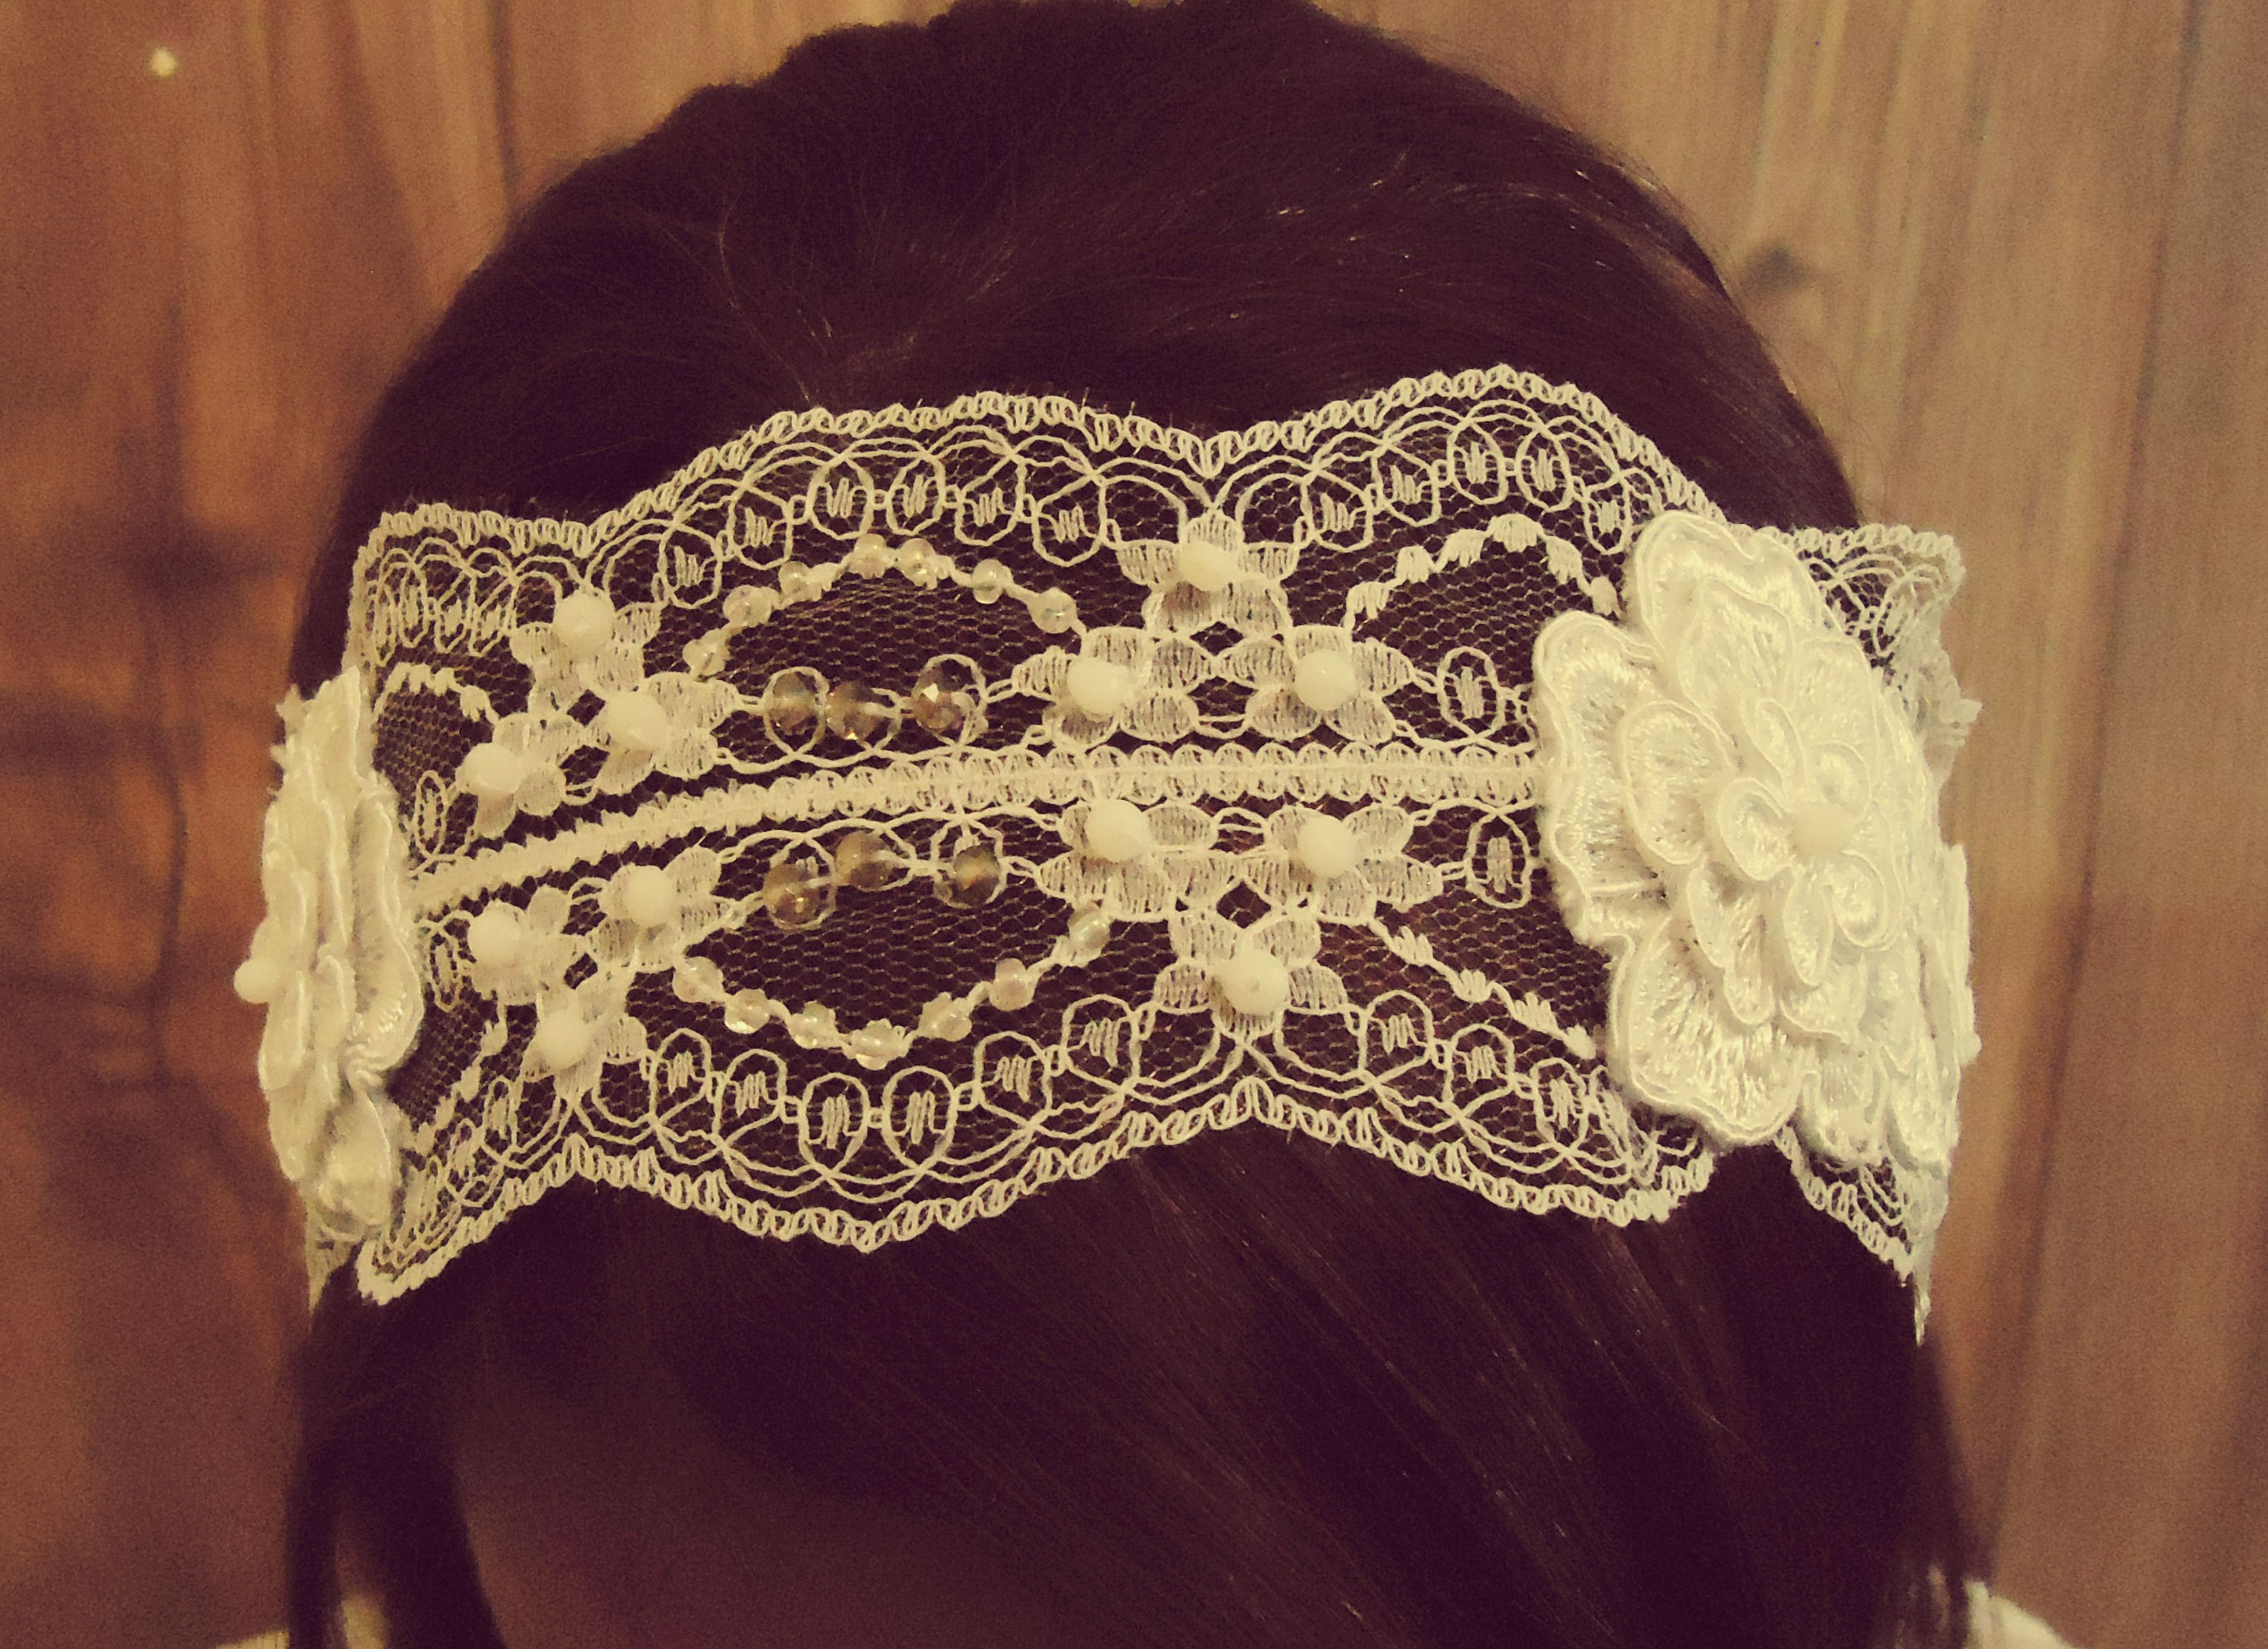 Lace is timeless! This hand-made headband is made with white french lace, inlaid with white and amber crystals and transparent rainbow mini pearls. Tied to your hair with delicate white satin ribbon. Perfect for a vintage beach-wedding or a country wedding.  https://www.etsy.com/listing/193917443/bridal-hair-headpiece-lace-and-flower?ref=related-0